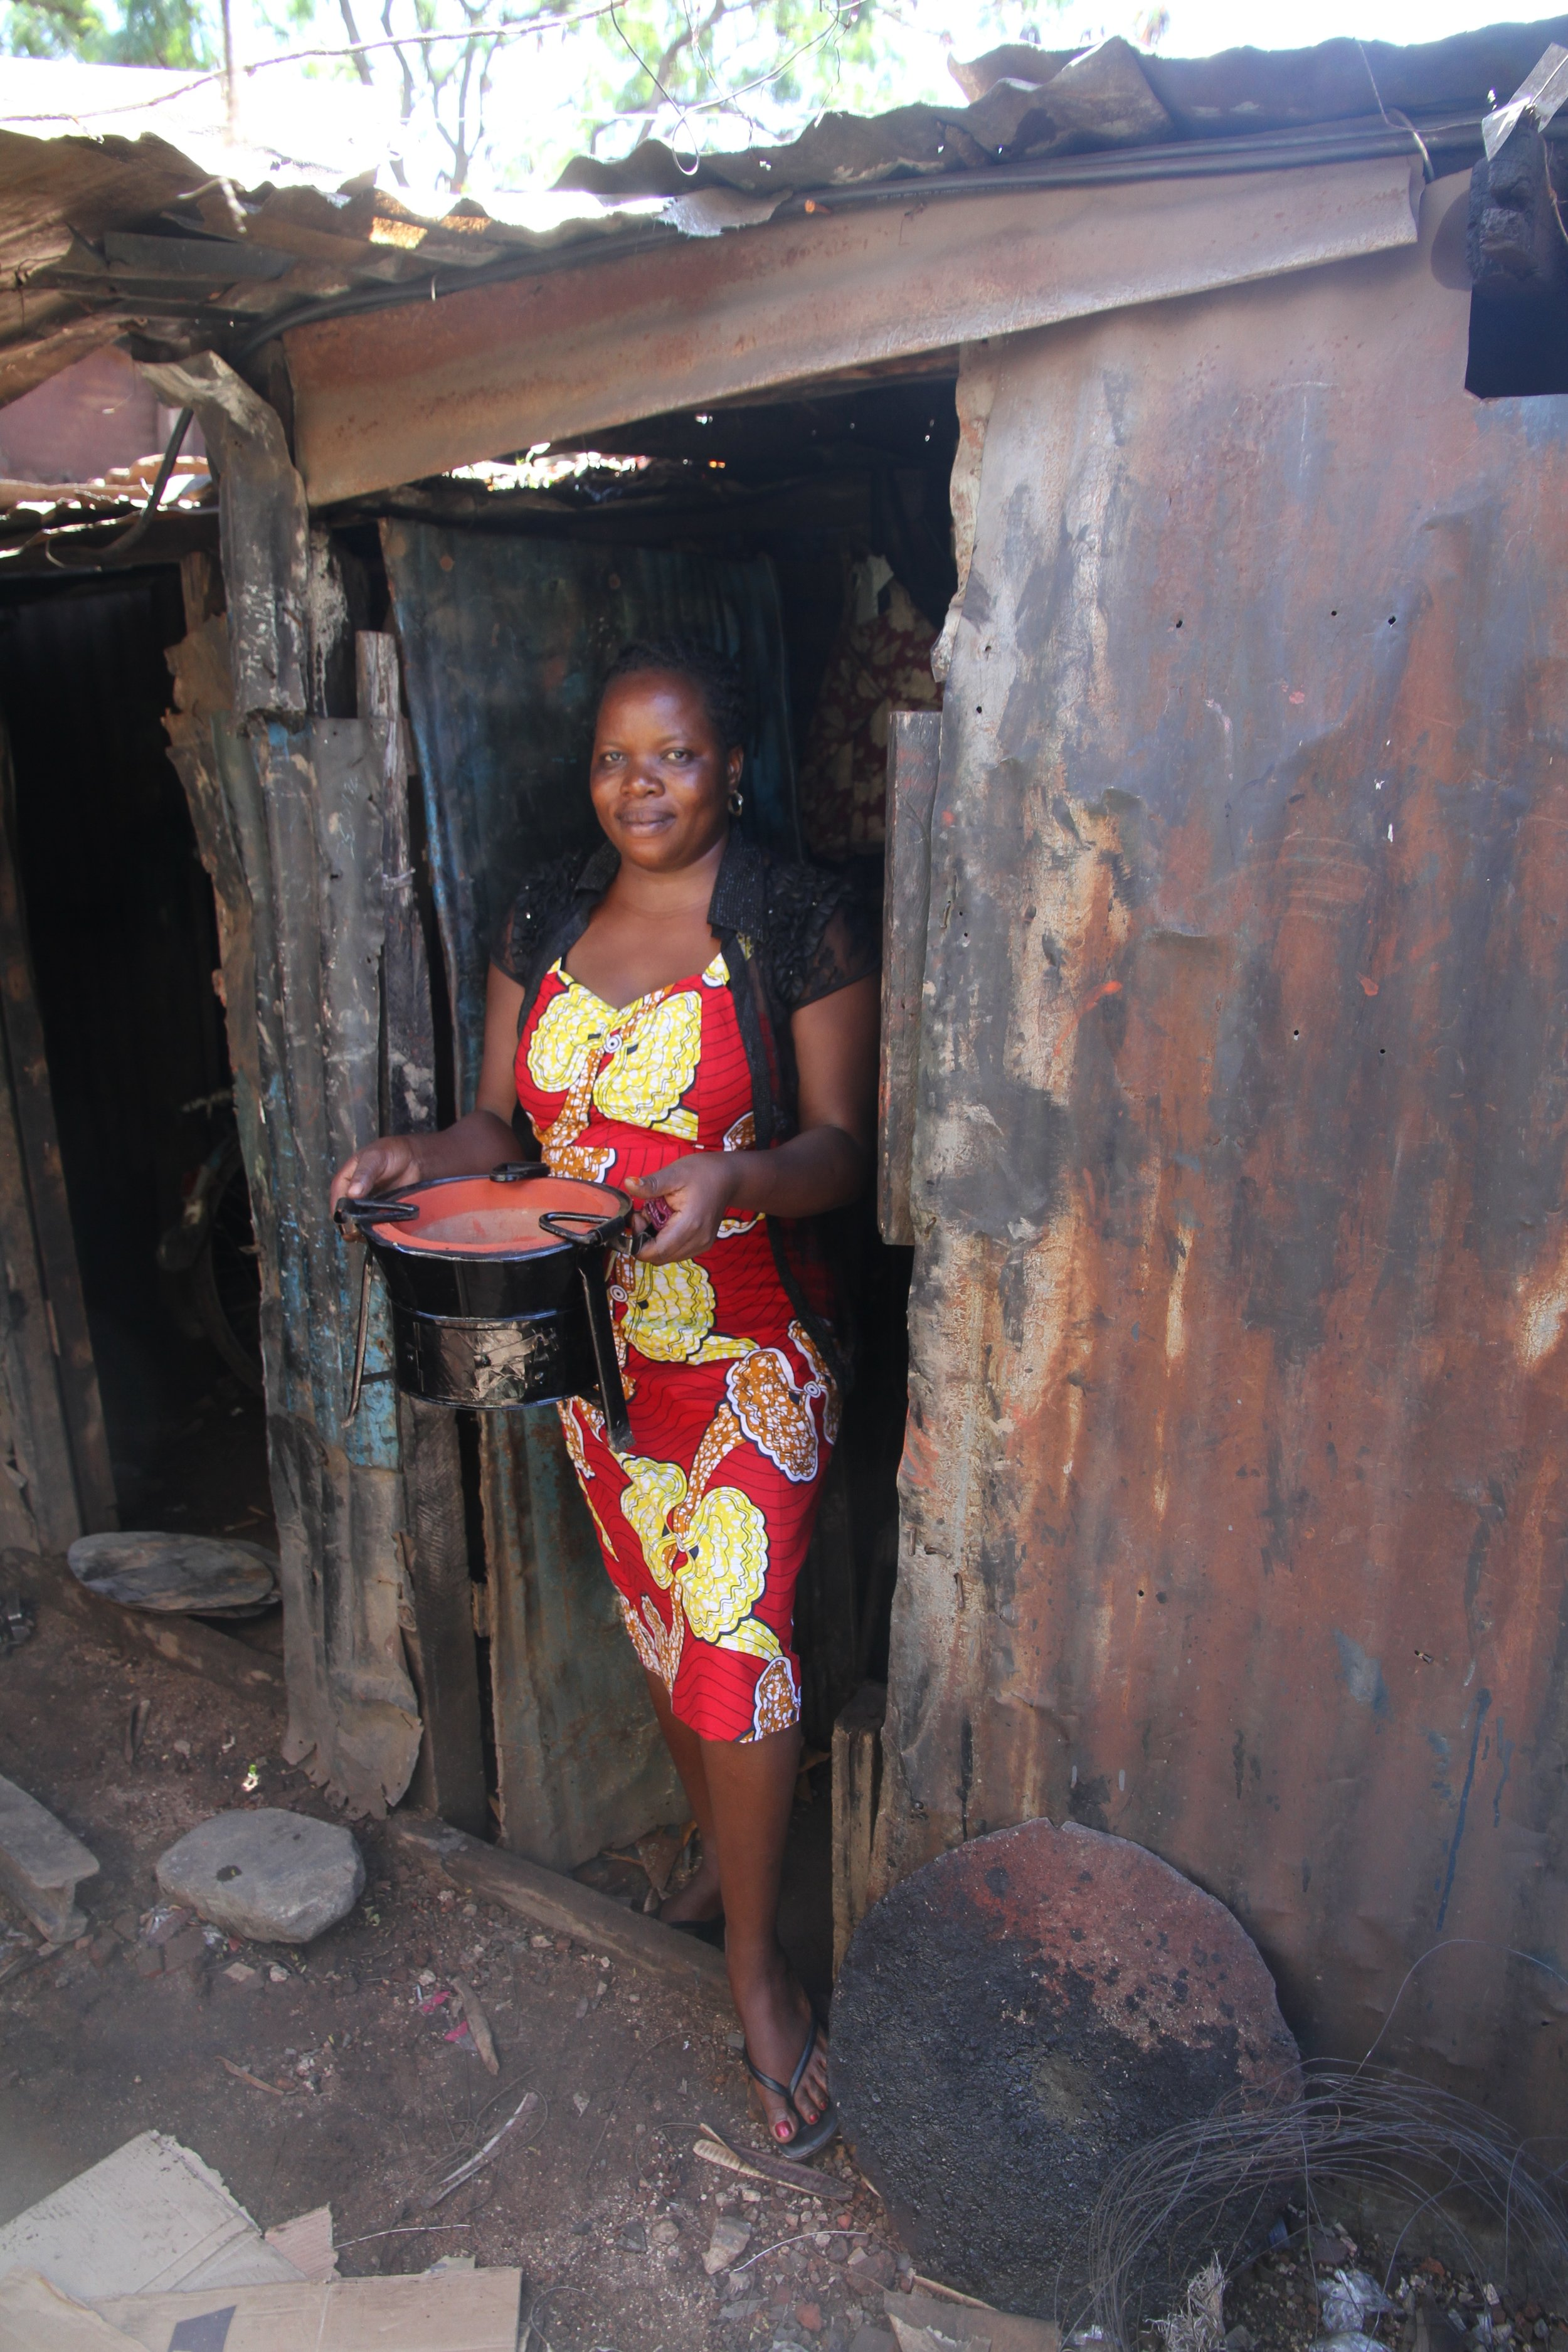 With one of her stoves